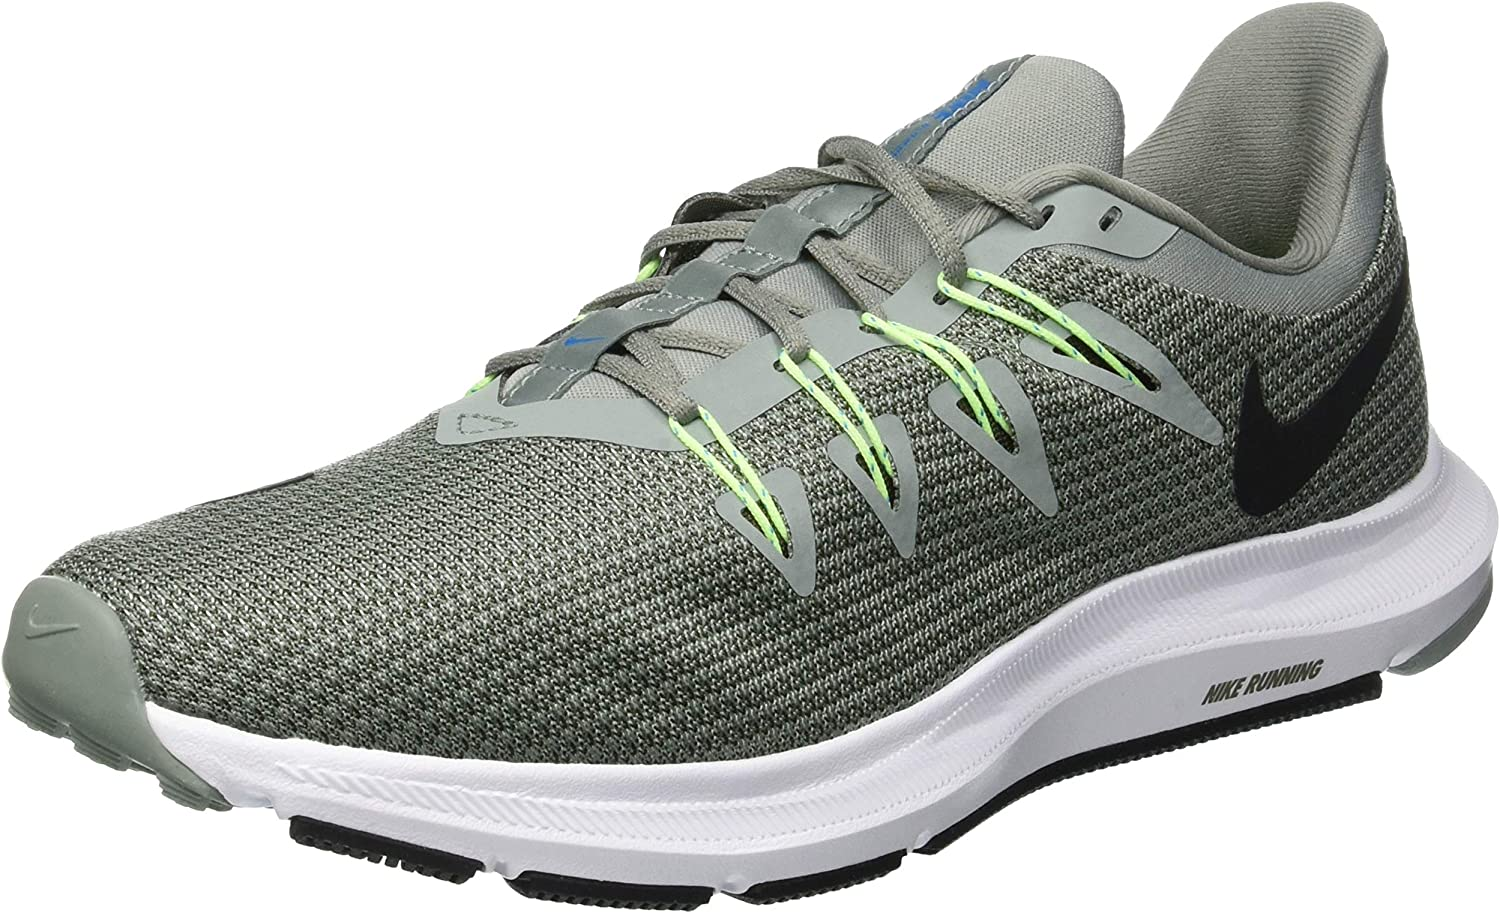 Nike Quest, Zapatillas de Running para Hombre, Verde (Mica Green/Black/Twilight Mars 300), 43 EU: Amazon.es: Zapatos y complementos